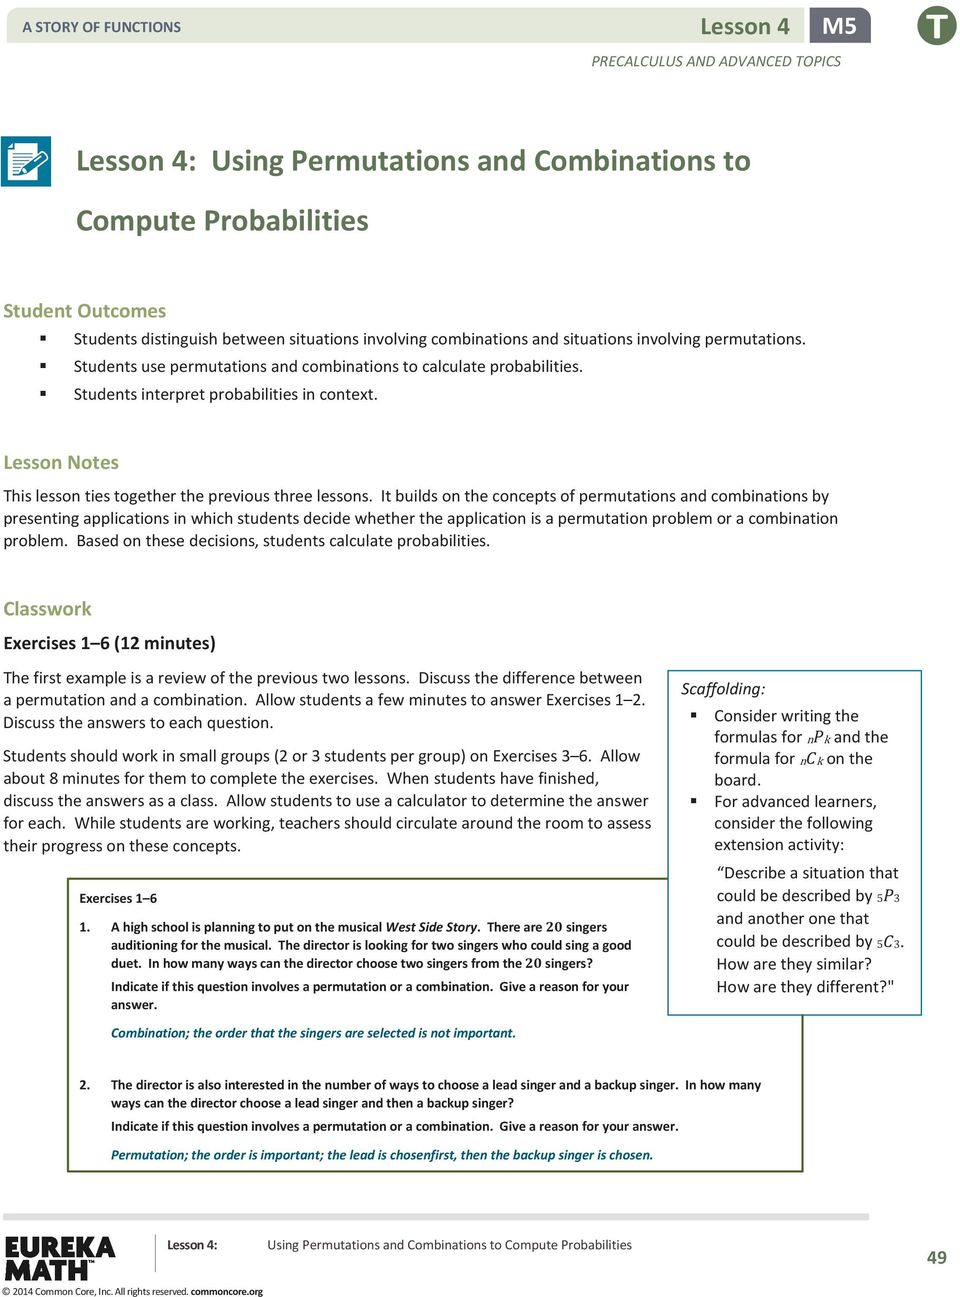 Using Permutations And Combinations To Compute Probabilities Pdf